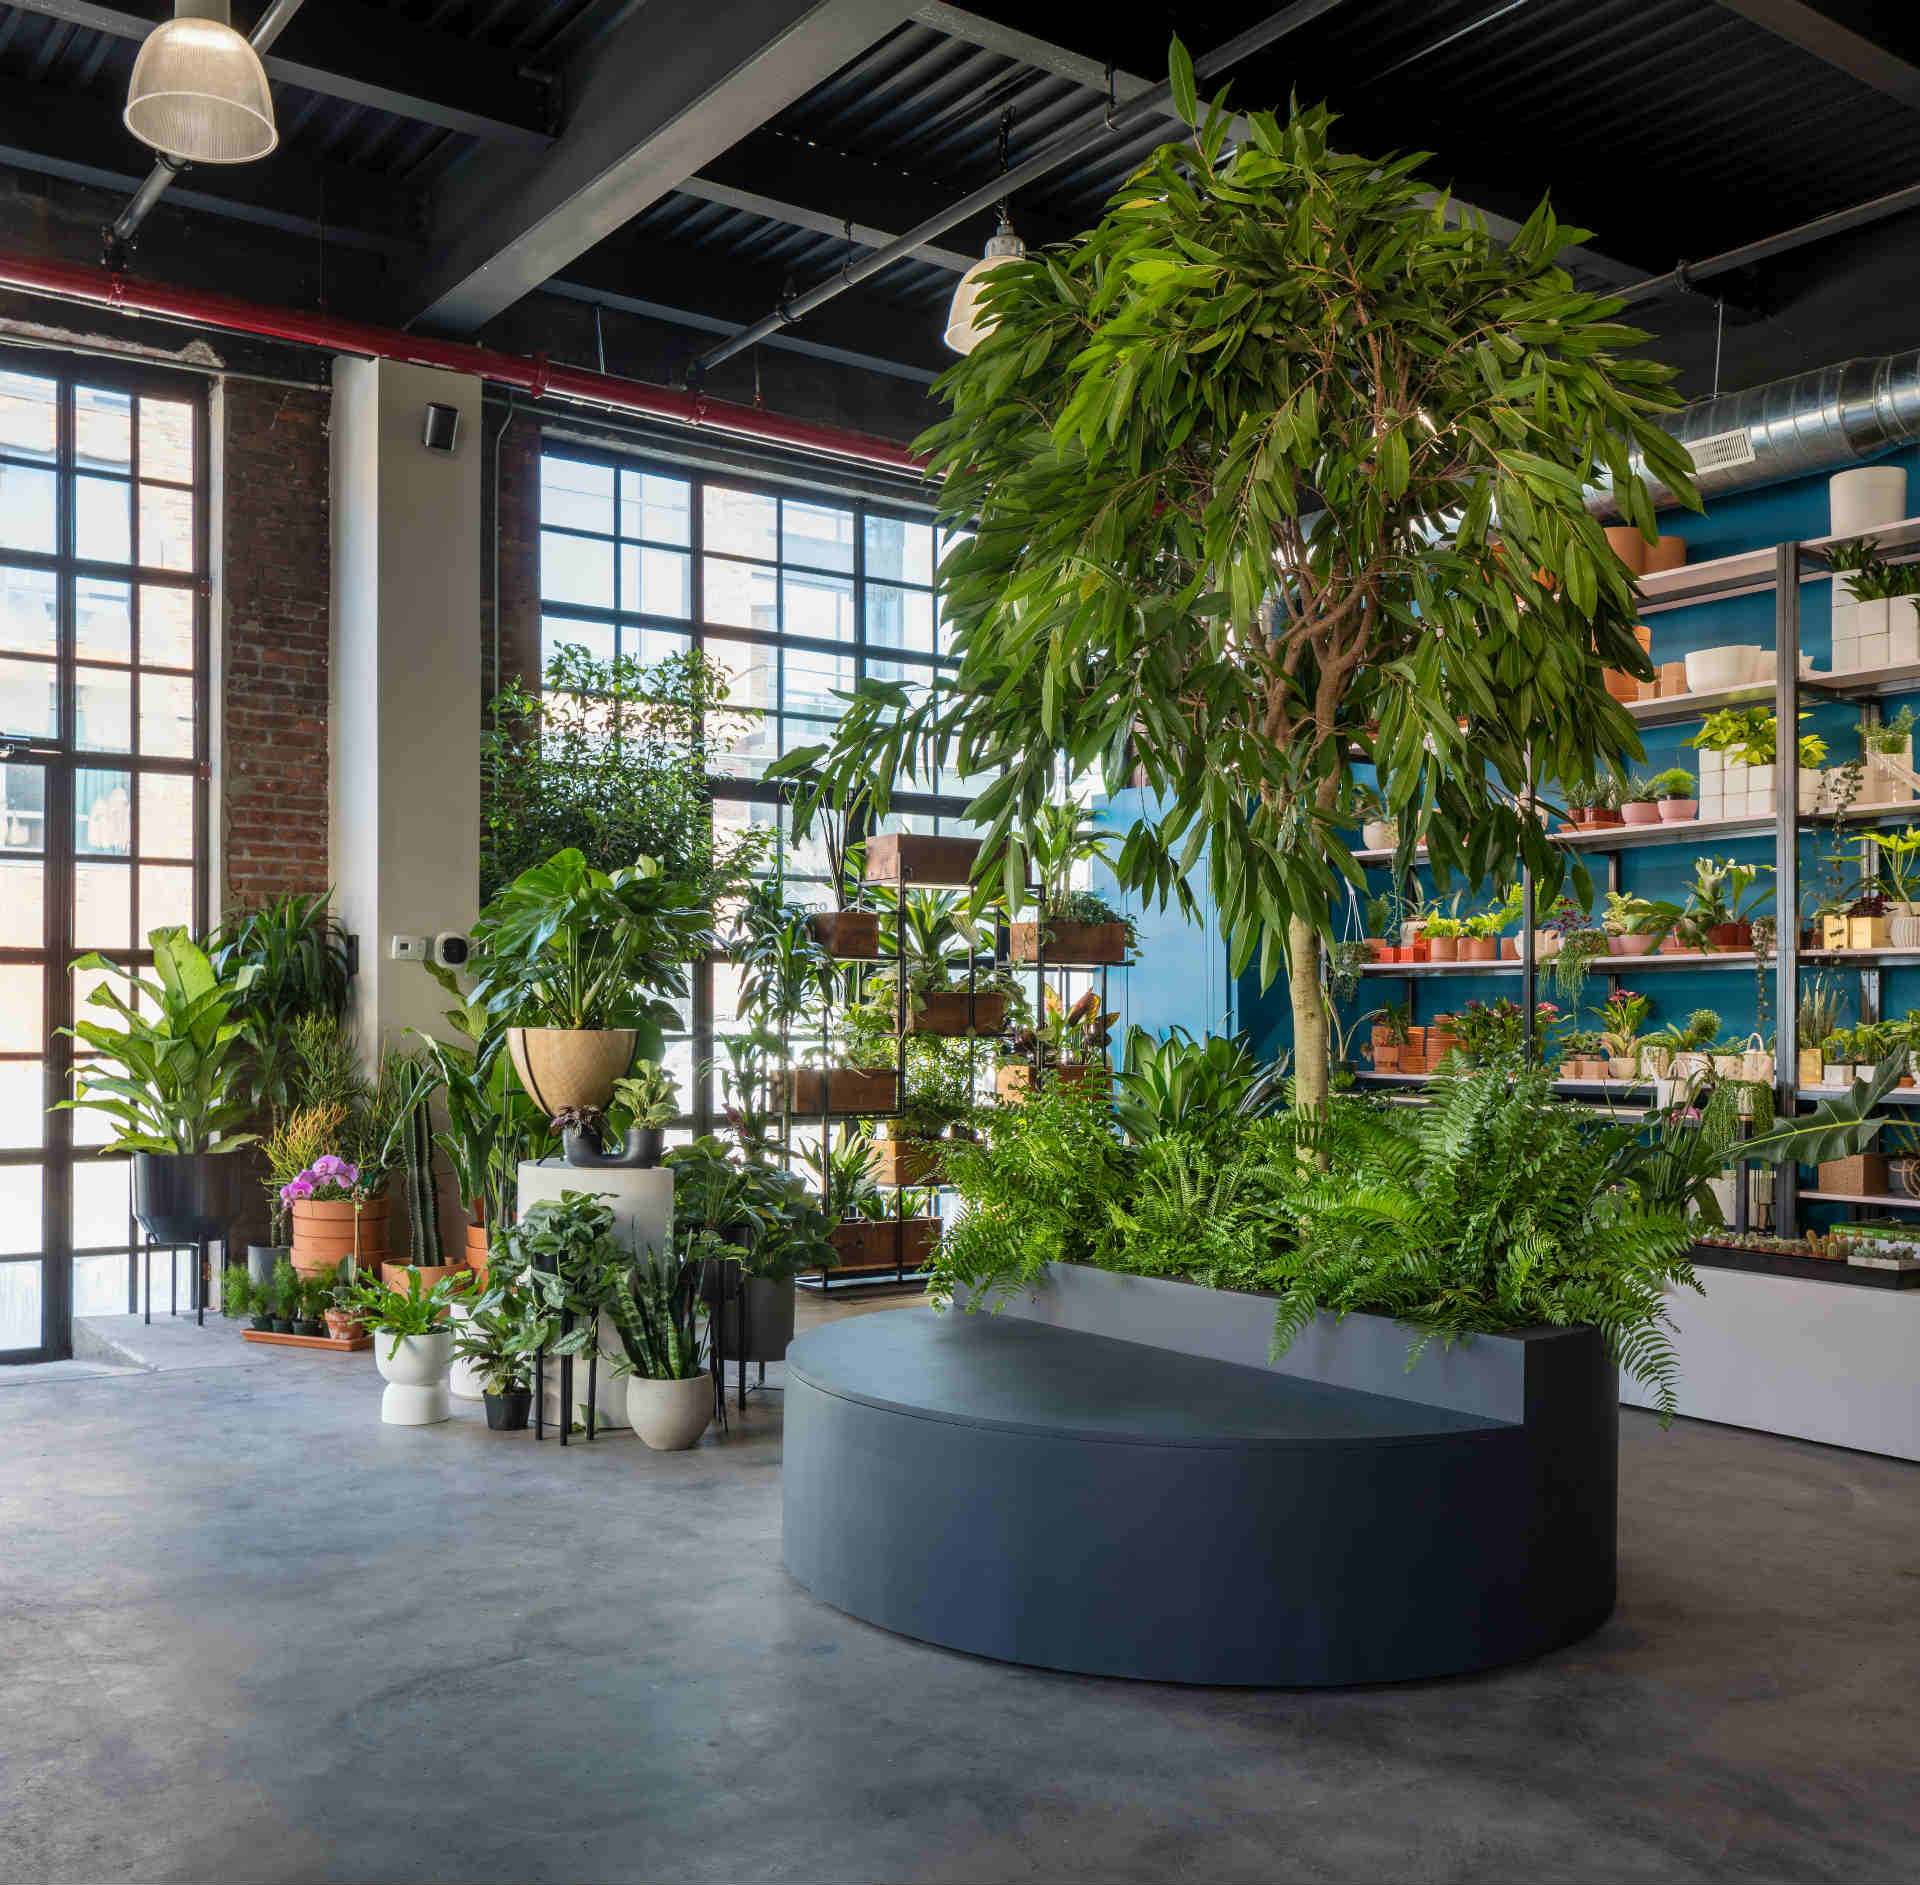 Greenery Unlimited: World's First Biophilic Design Store